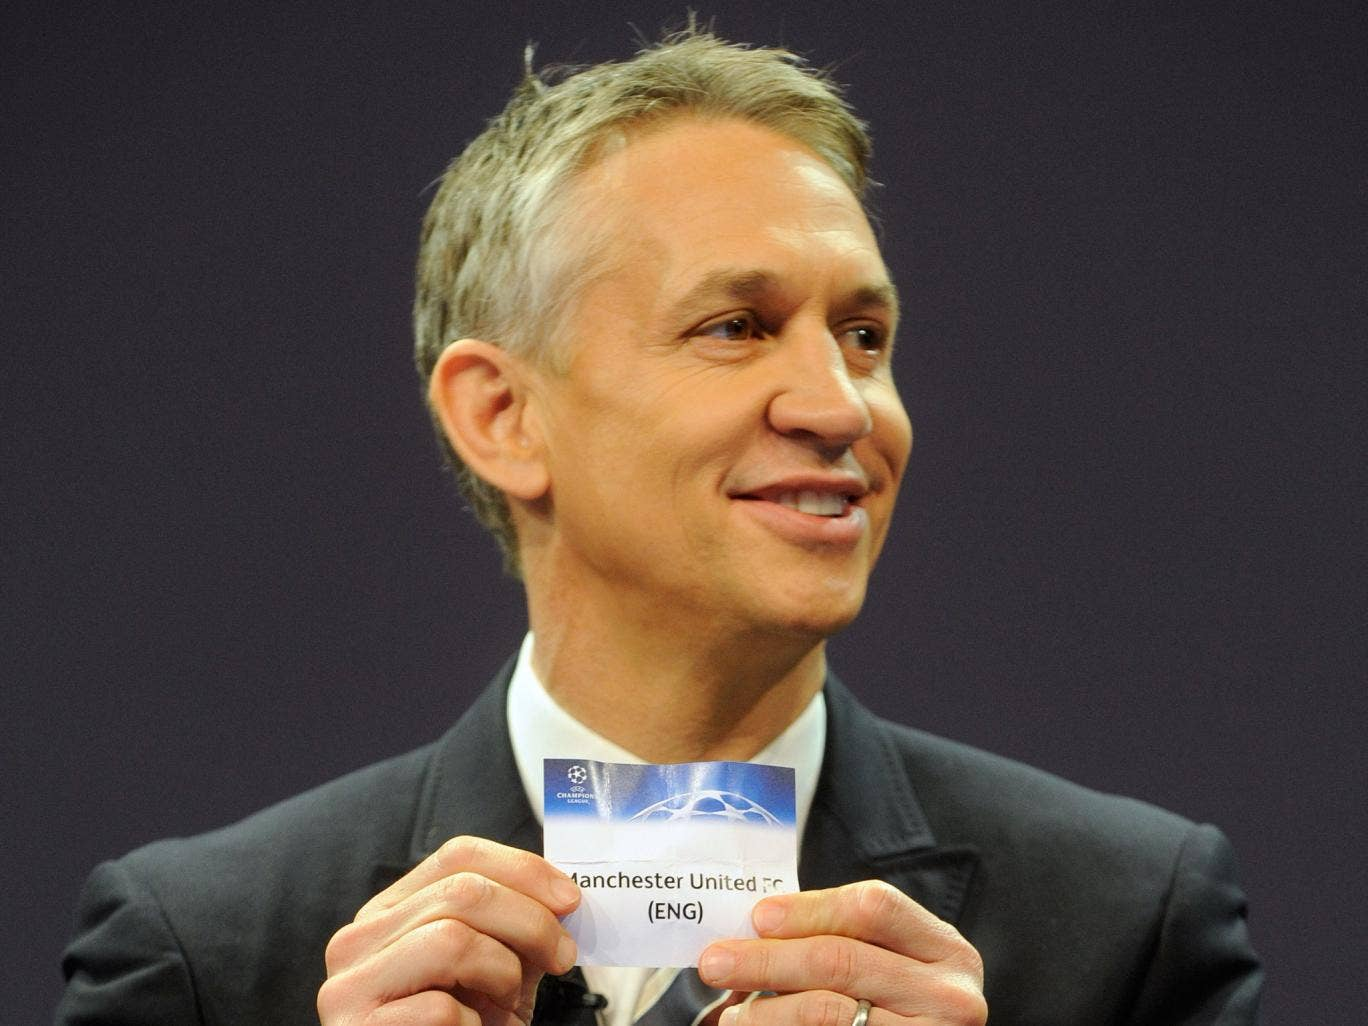 """<b>Gary Lineker</b> gives his opinion on FIFA's rankings system: """"England are up to 3rd in FIFA world rankings. Perhaps they looked at GB on the Olympics medal table and got confused."""""""